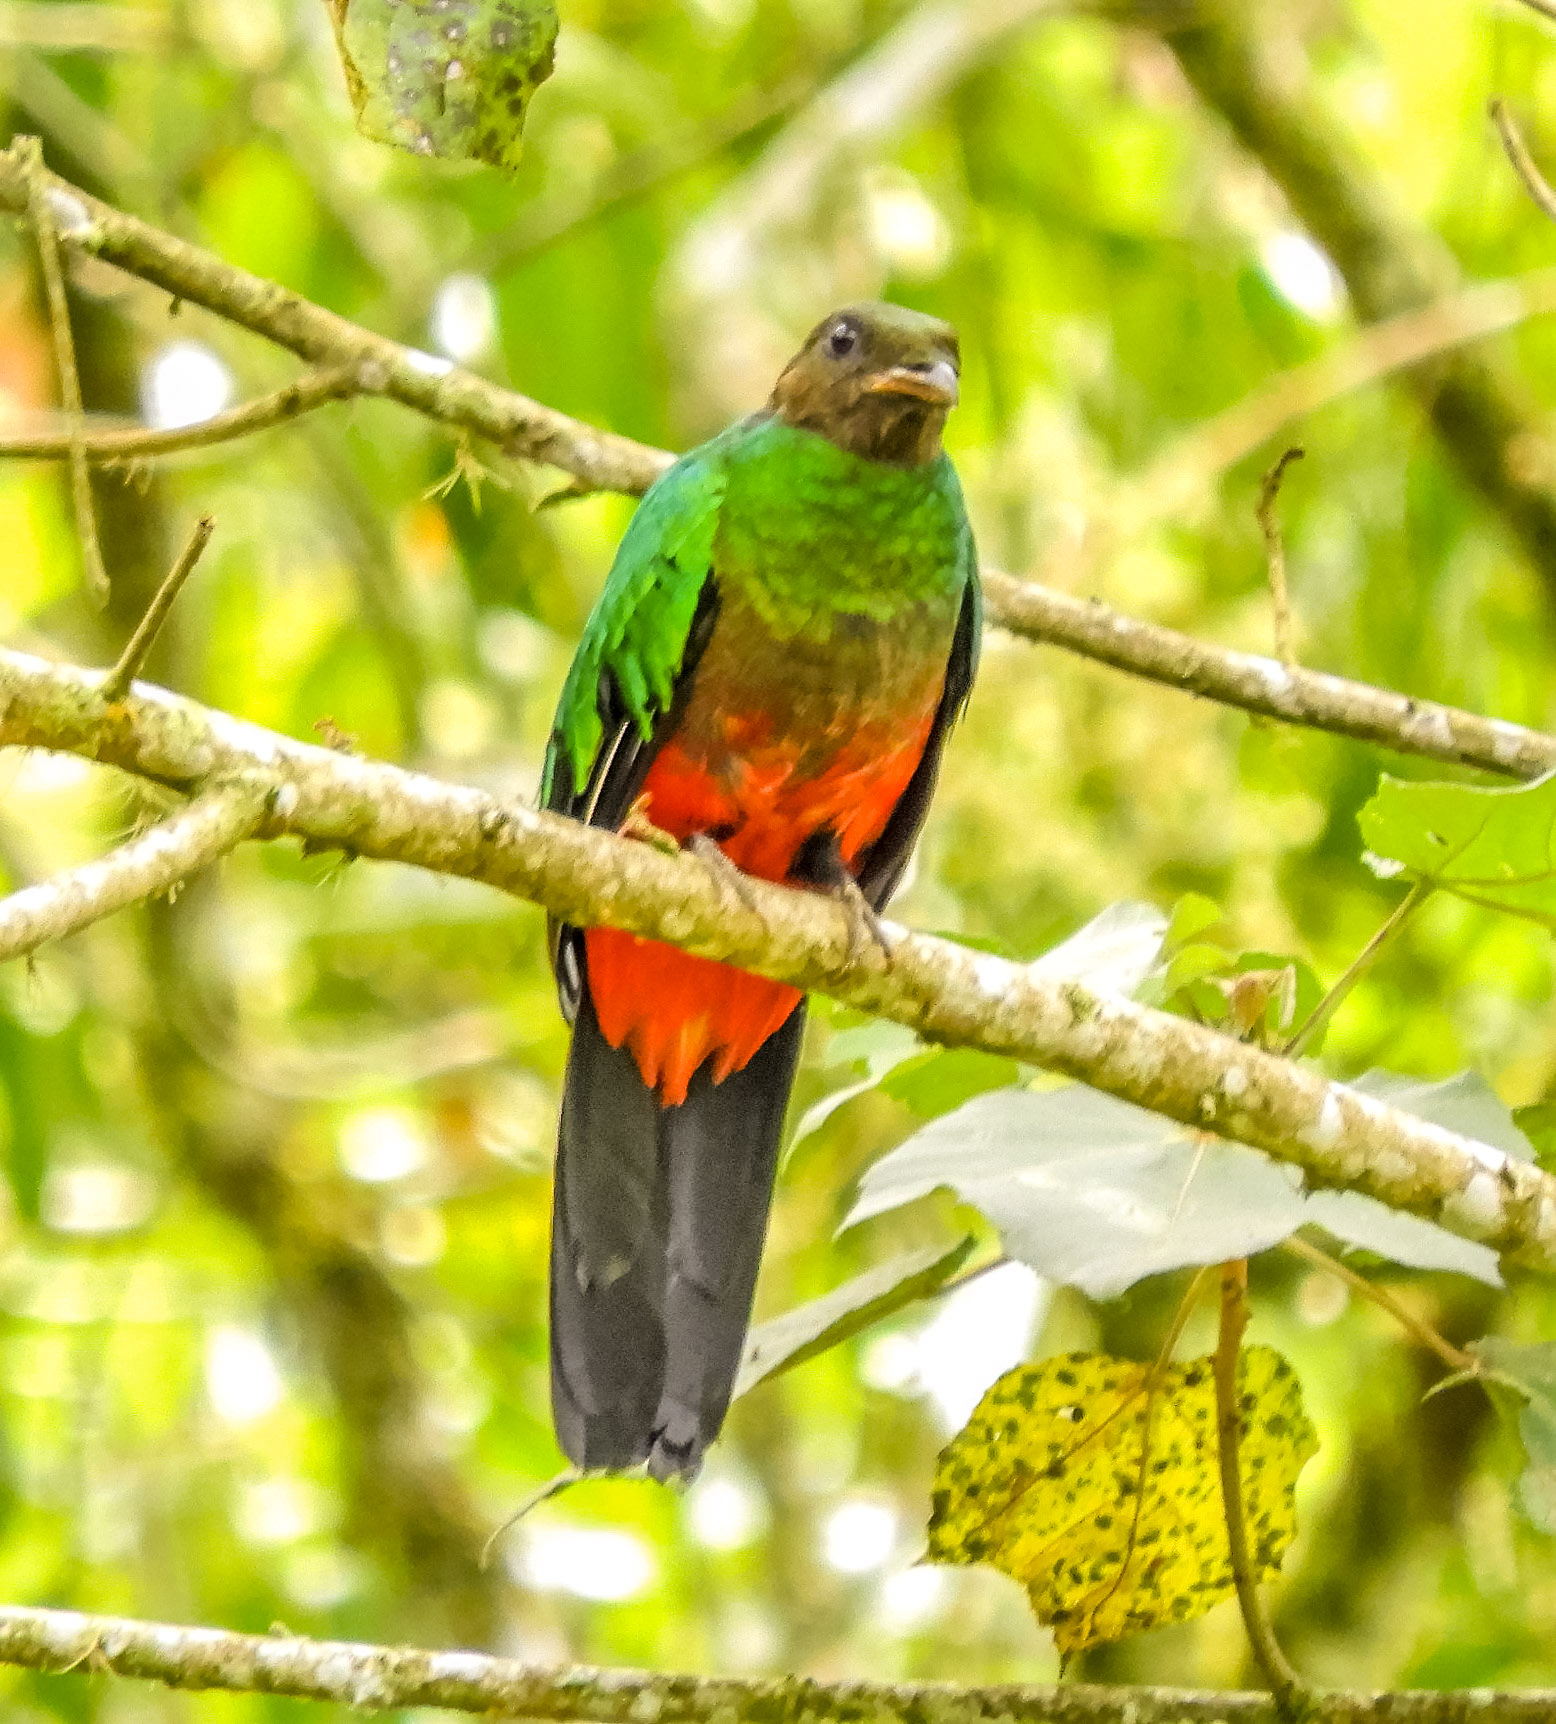 Golden headed quetzal hona (1)